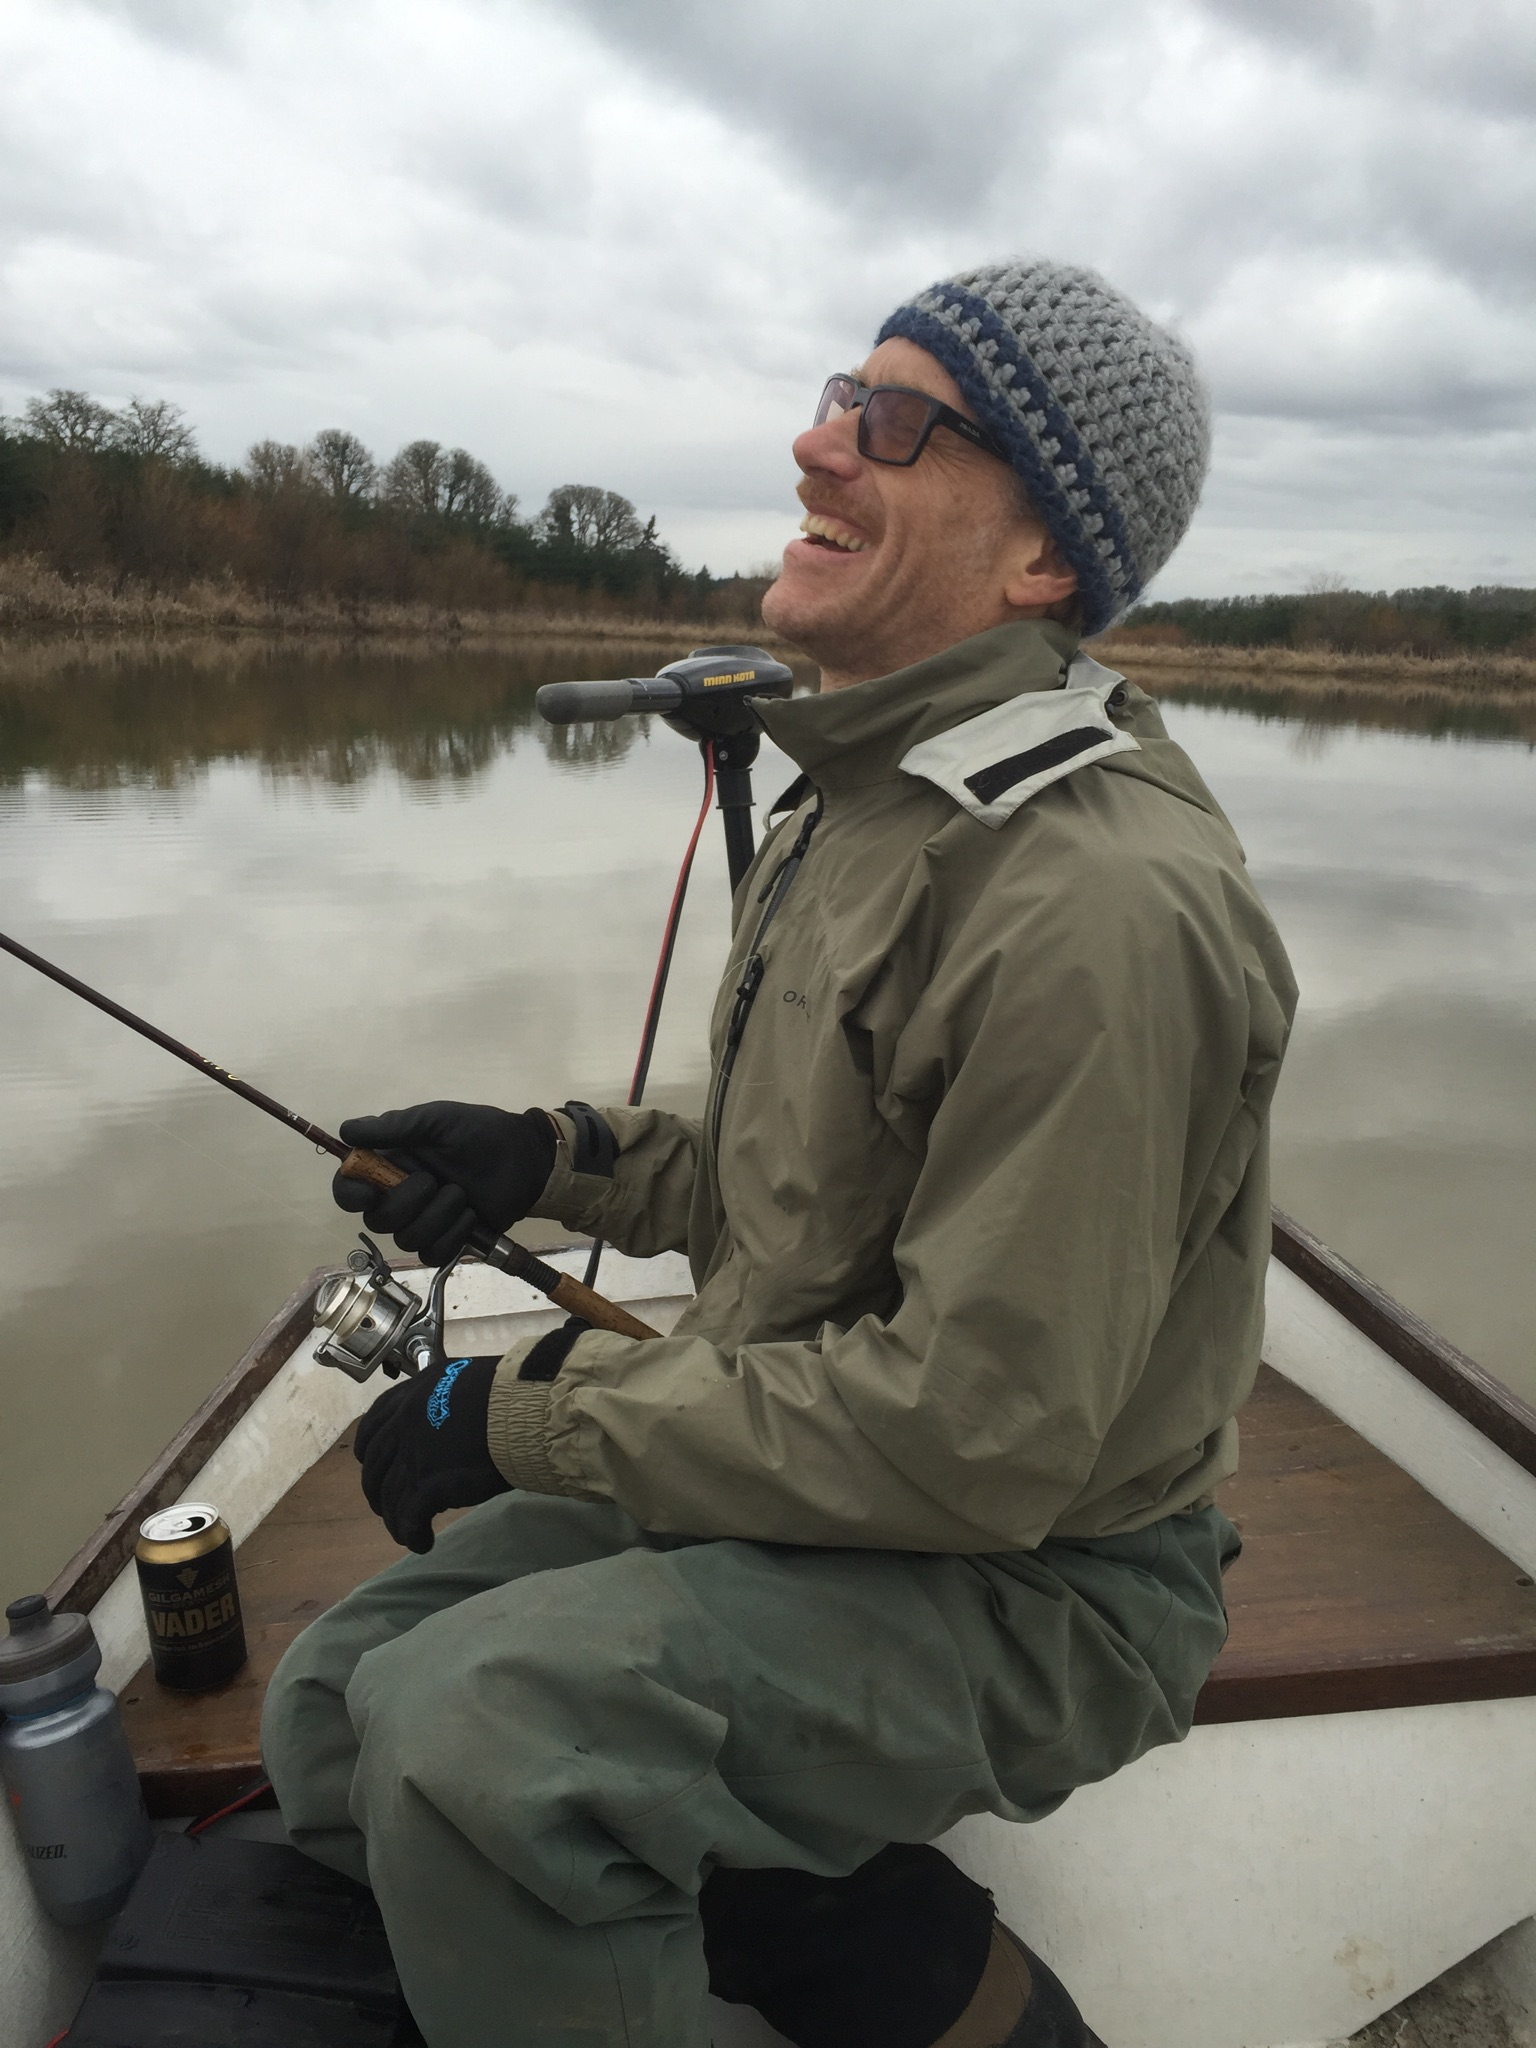 Photographer, illustrator and engineer, Paul Shirkey, laughs on Turner Lake, January, 2017.